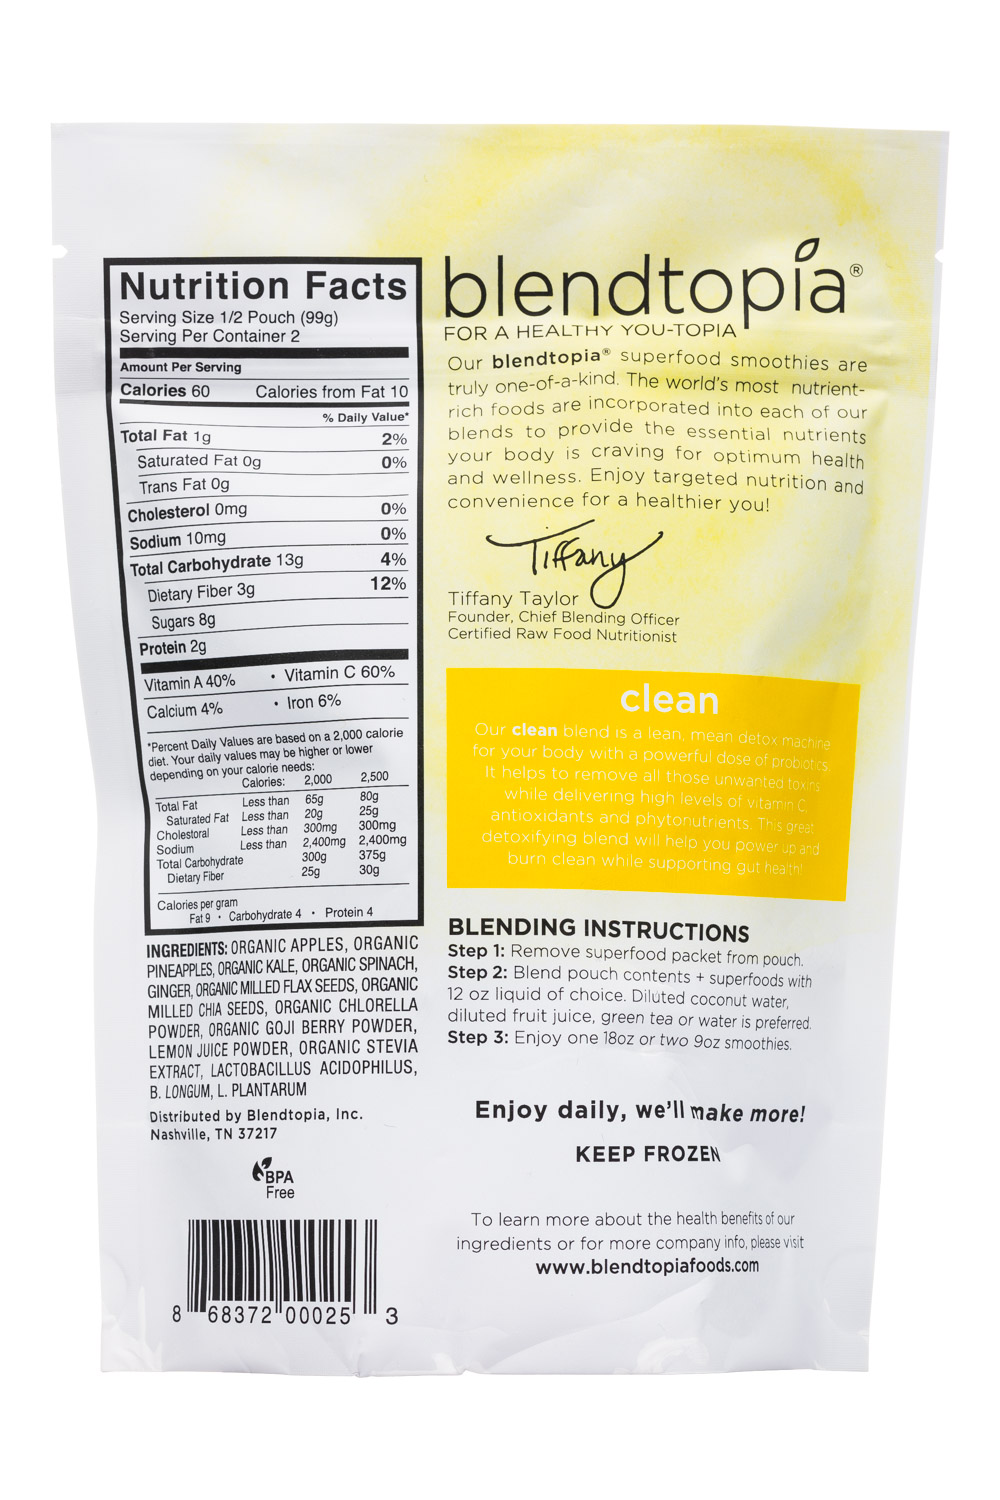 View Media | 9572 | Blendtopia-7oz-SmoothieKit-Clean-Facts | NOSH